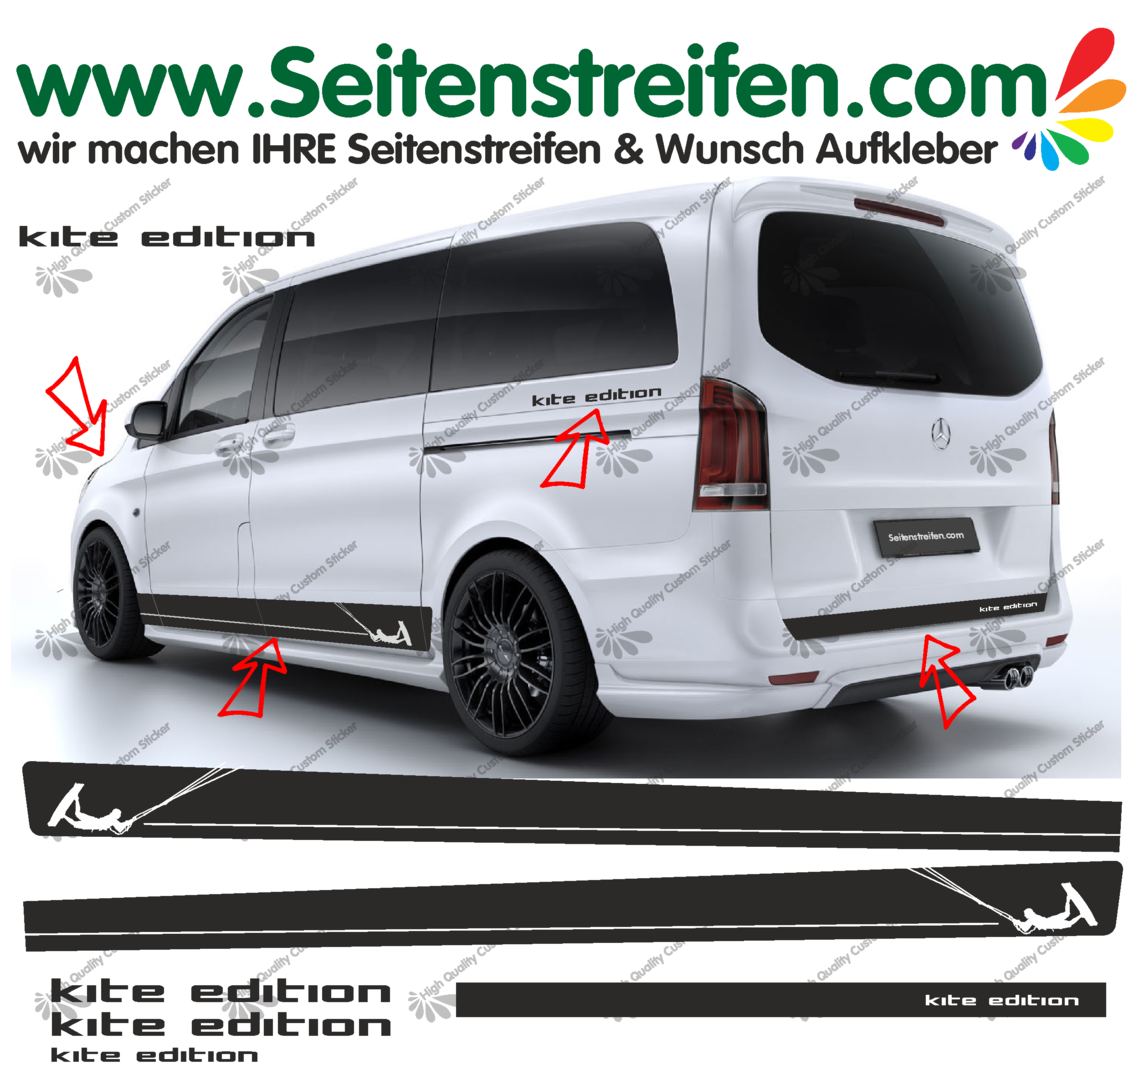 Mercedes Benz Class V - 447/693/638 Kite Surf N°2 - Graphics Decals Sticker Kit - N° 6759